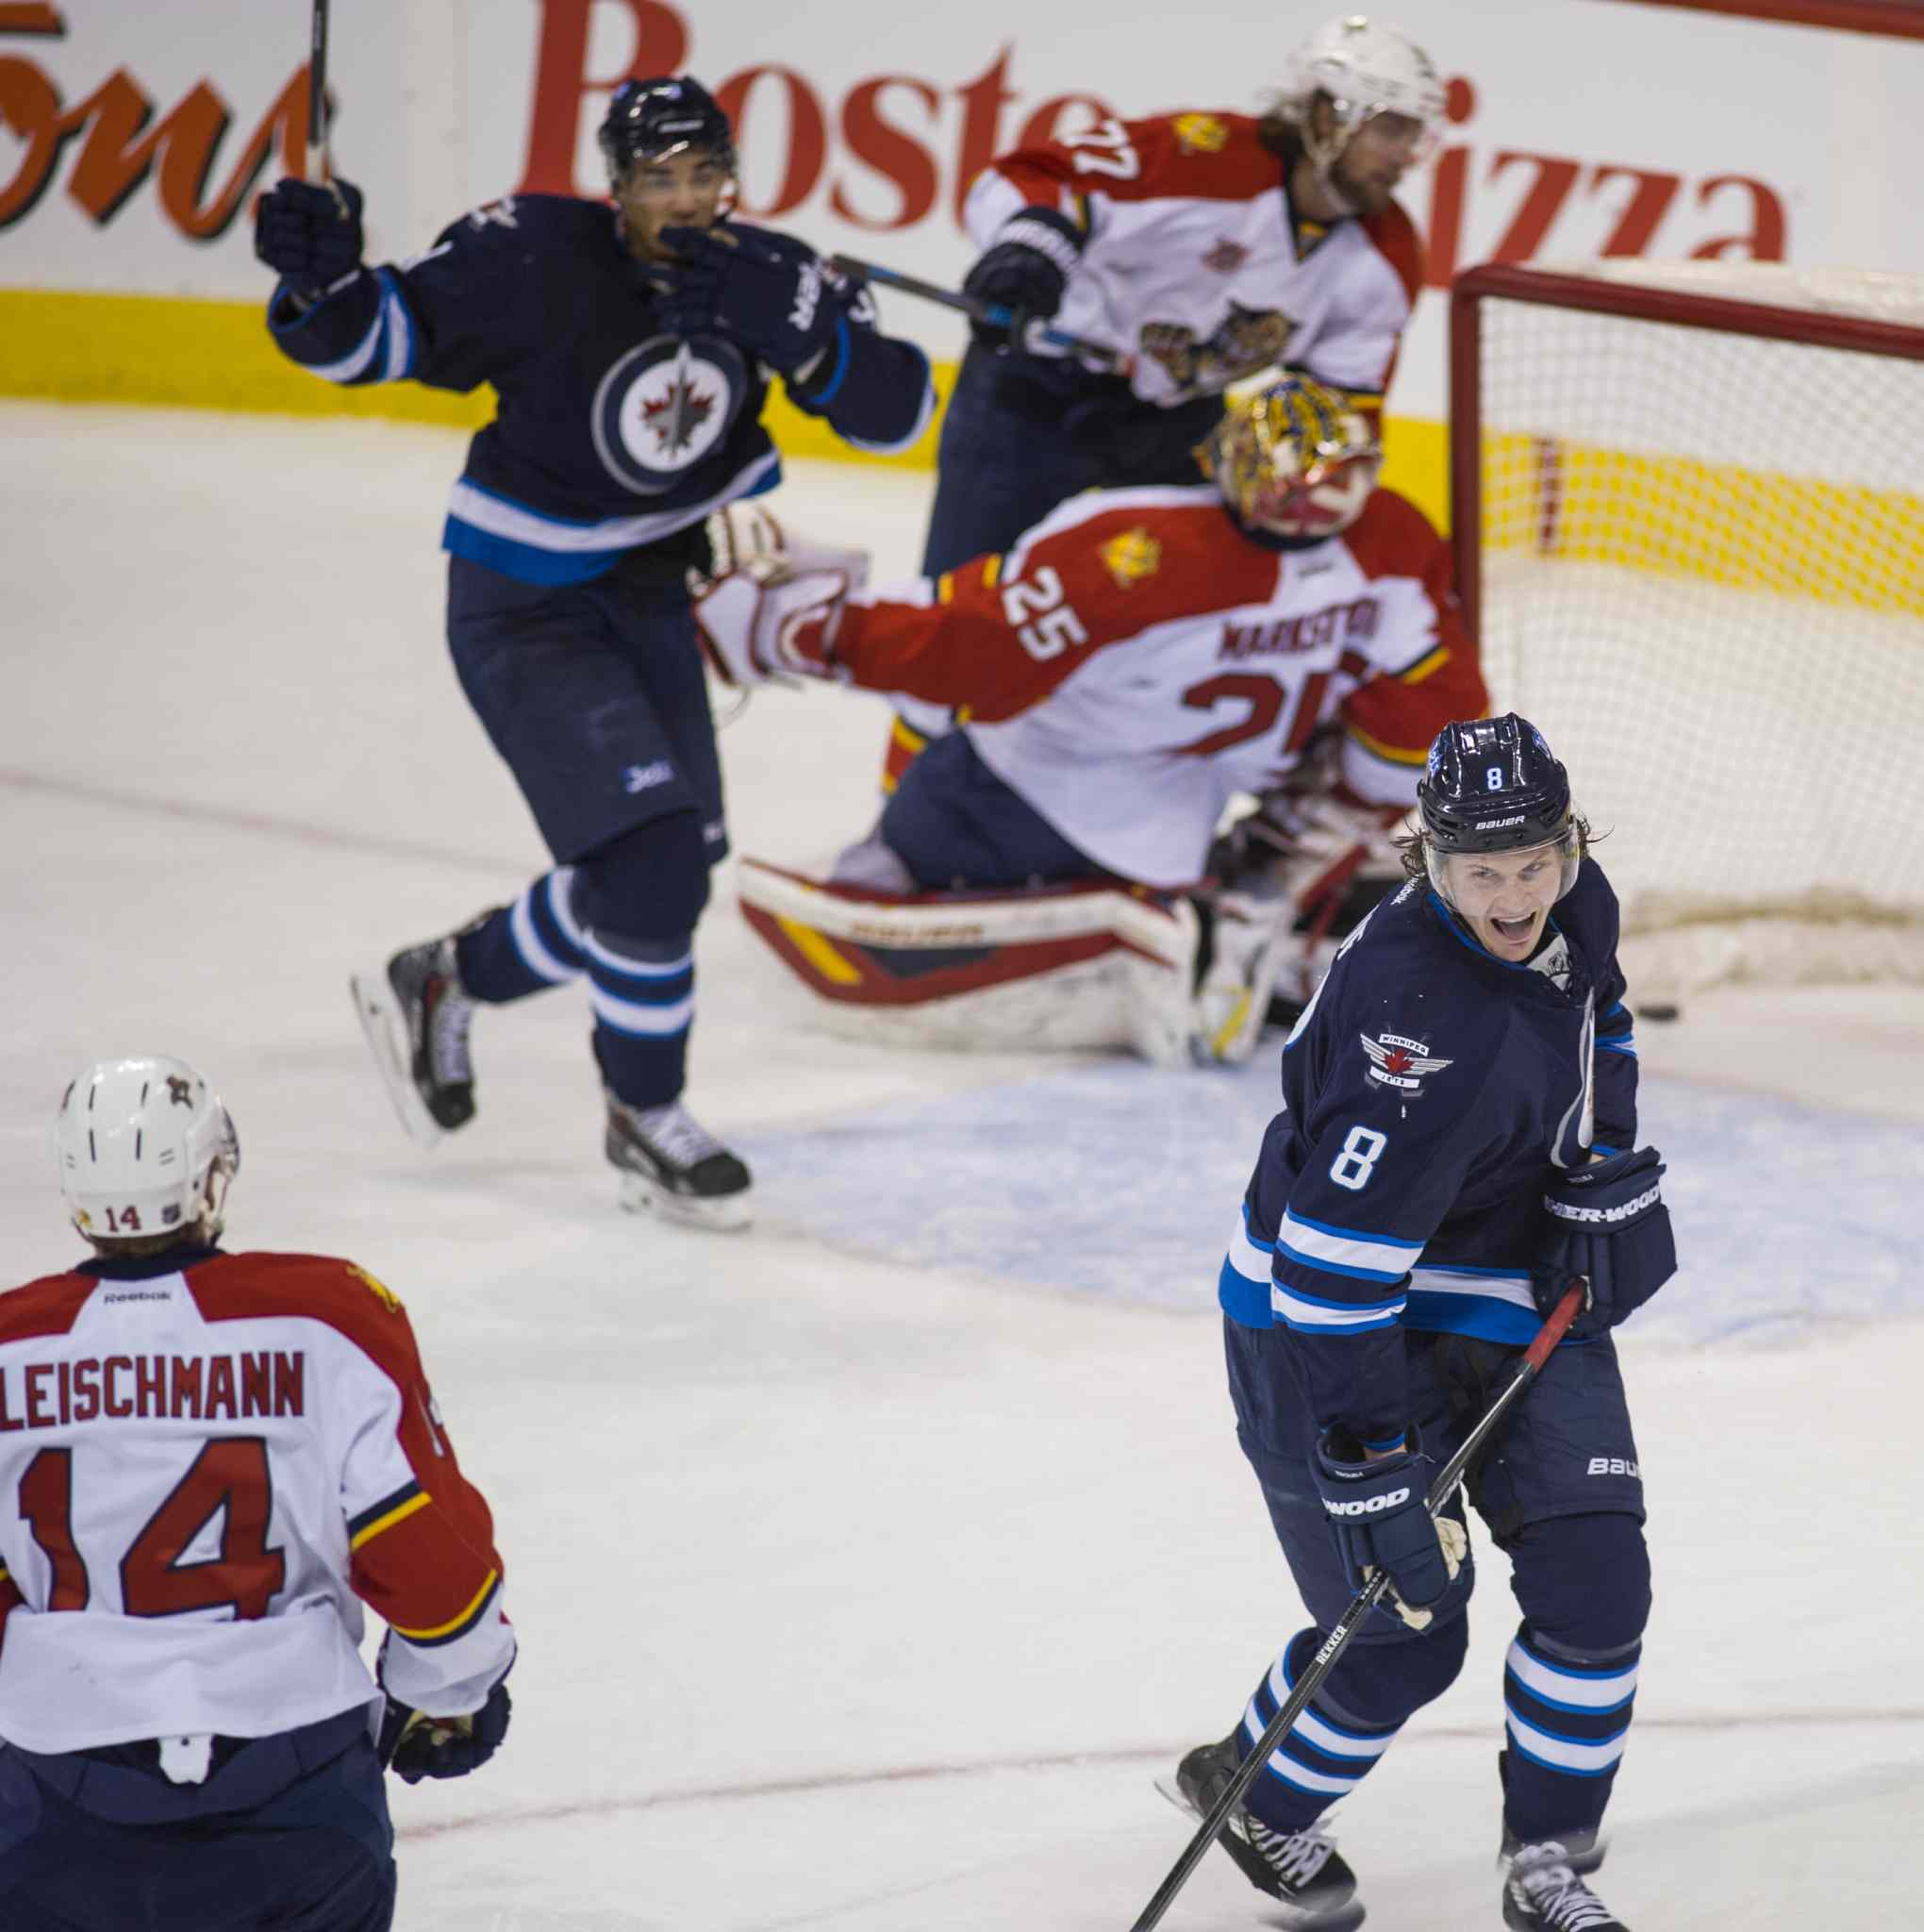 Winnipeg Jets Jacob Trouba (#8) celebrates his goal on Florida Panthers goal tender Jacob Markstrom (#25) during the first period action.